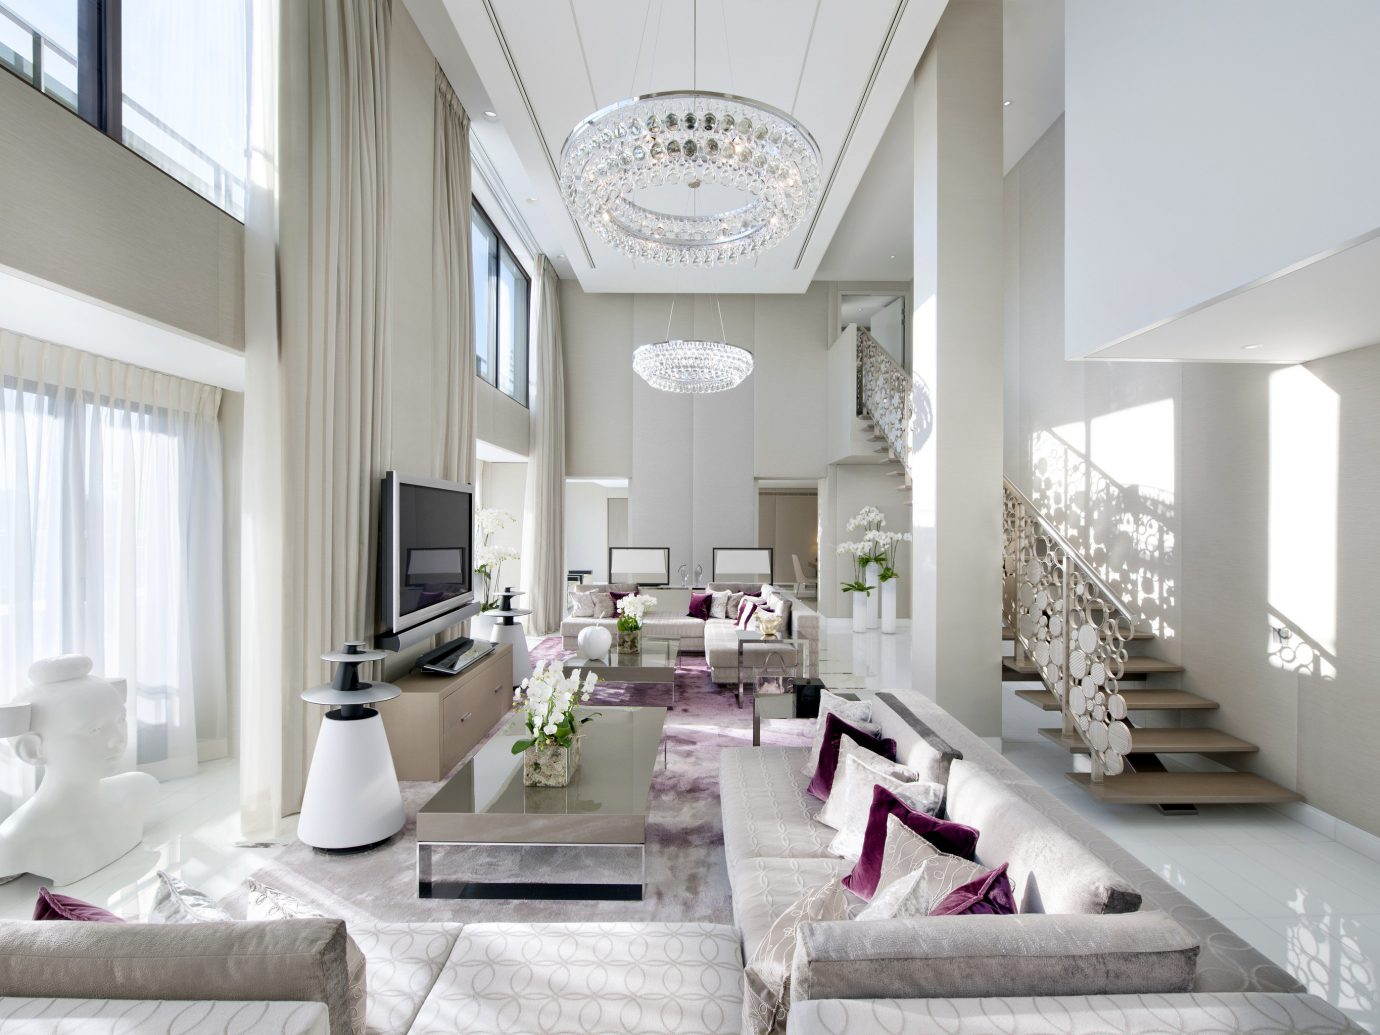 Hotels Luxury Travel indoor window wall interior design Living living room room Architecture ceiling furniture home interior designer decorated product design house loft daylighting apartment penthouse apartment Modern